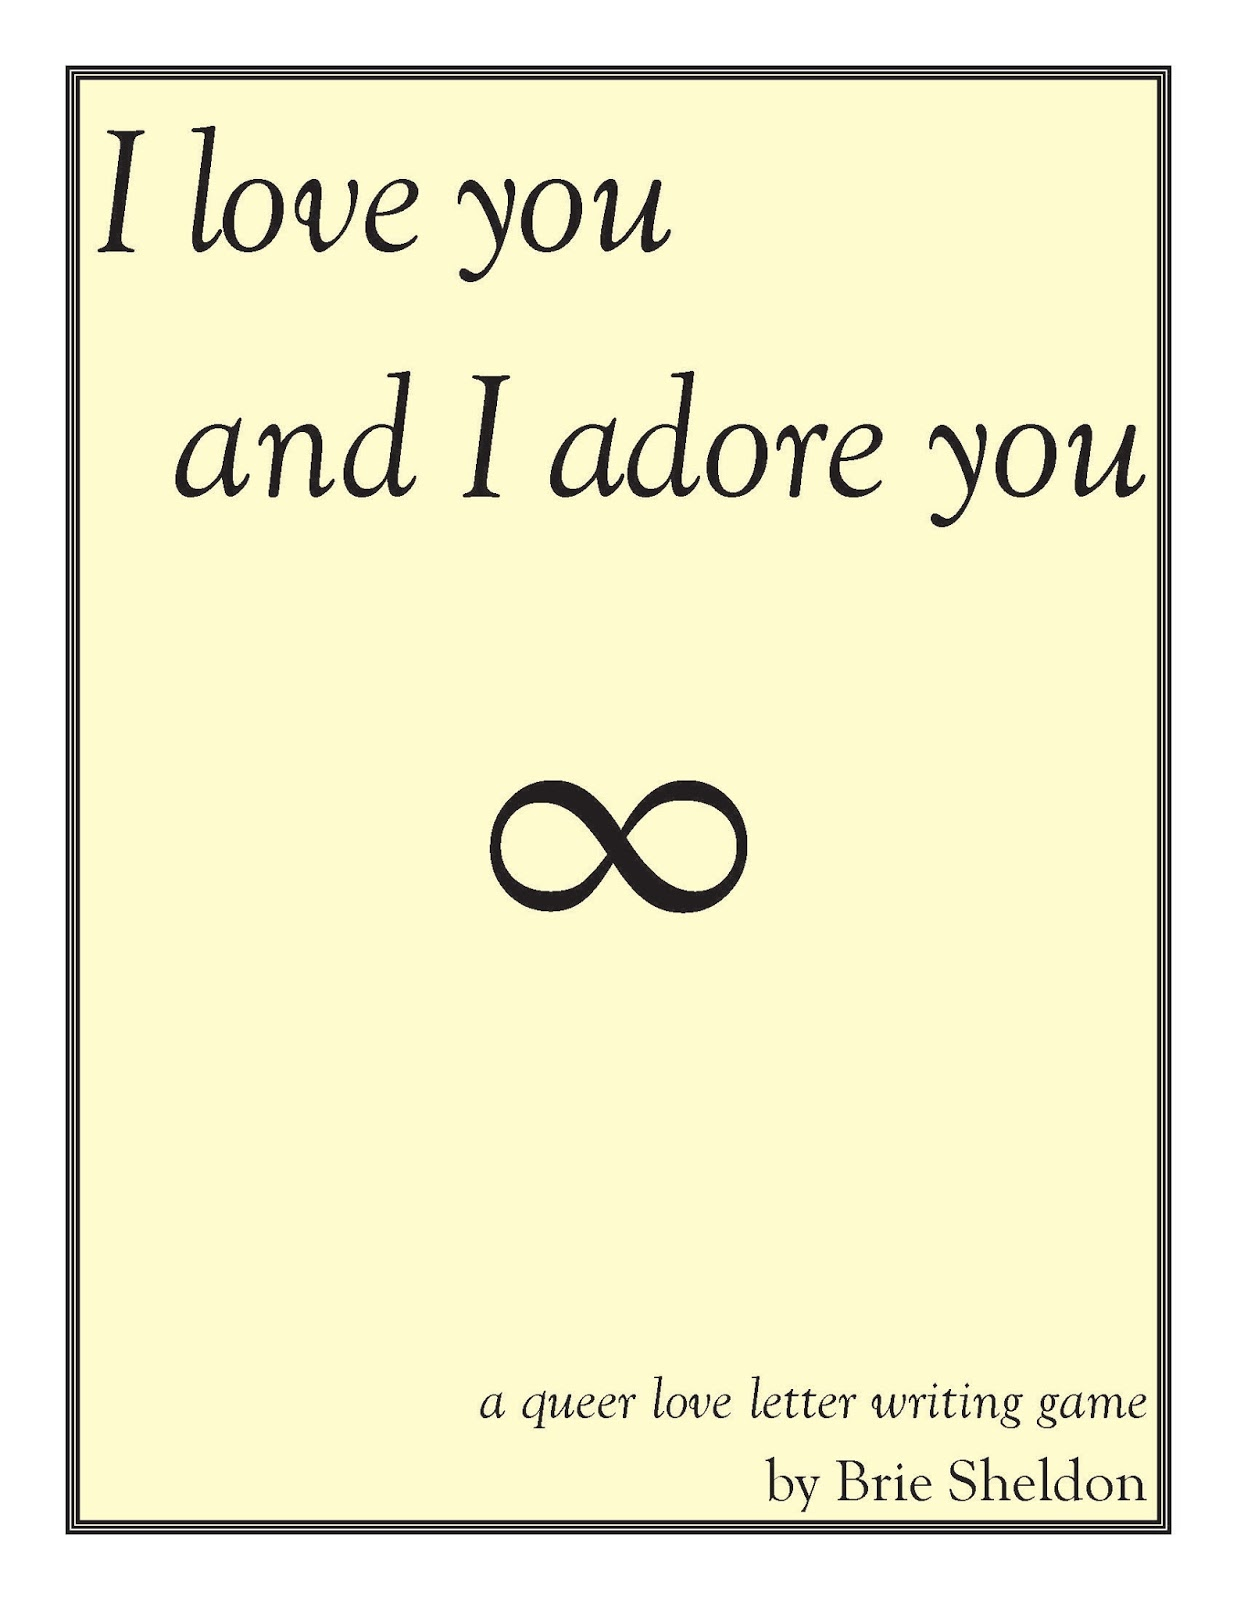 I adore you letter